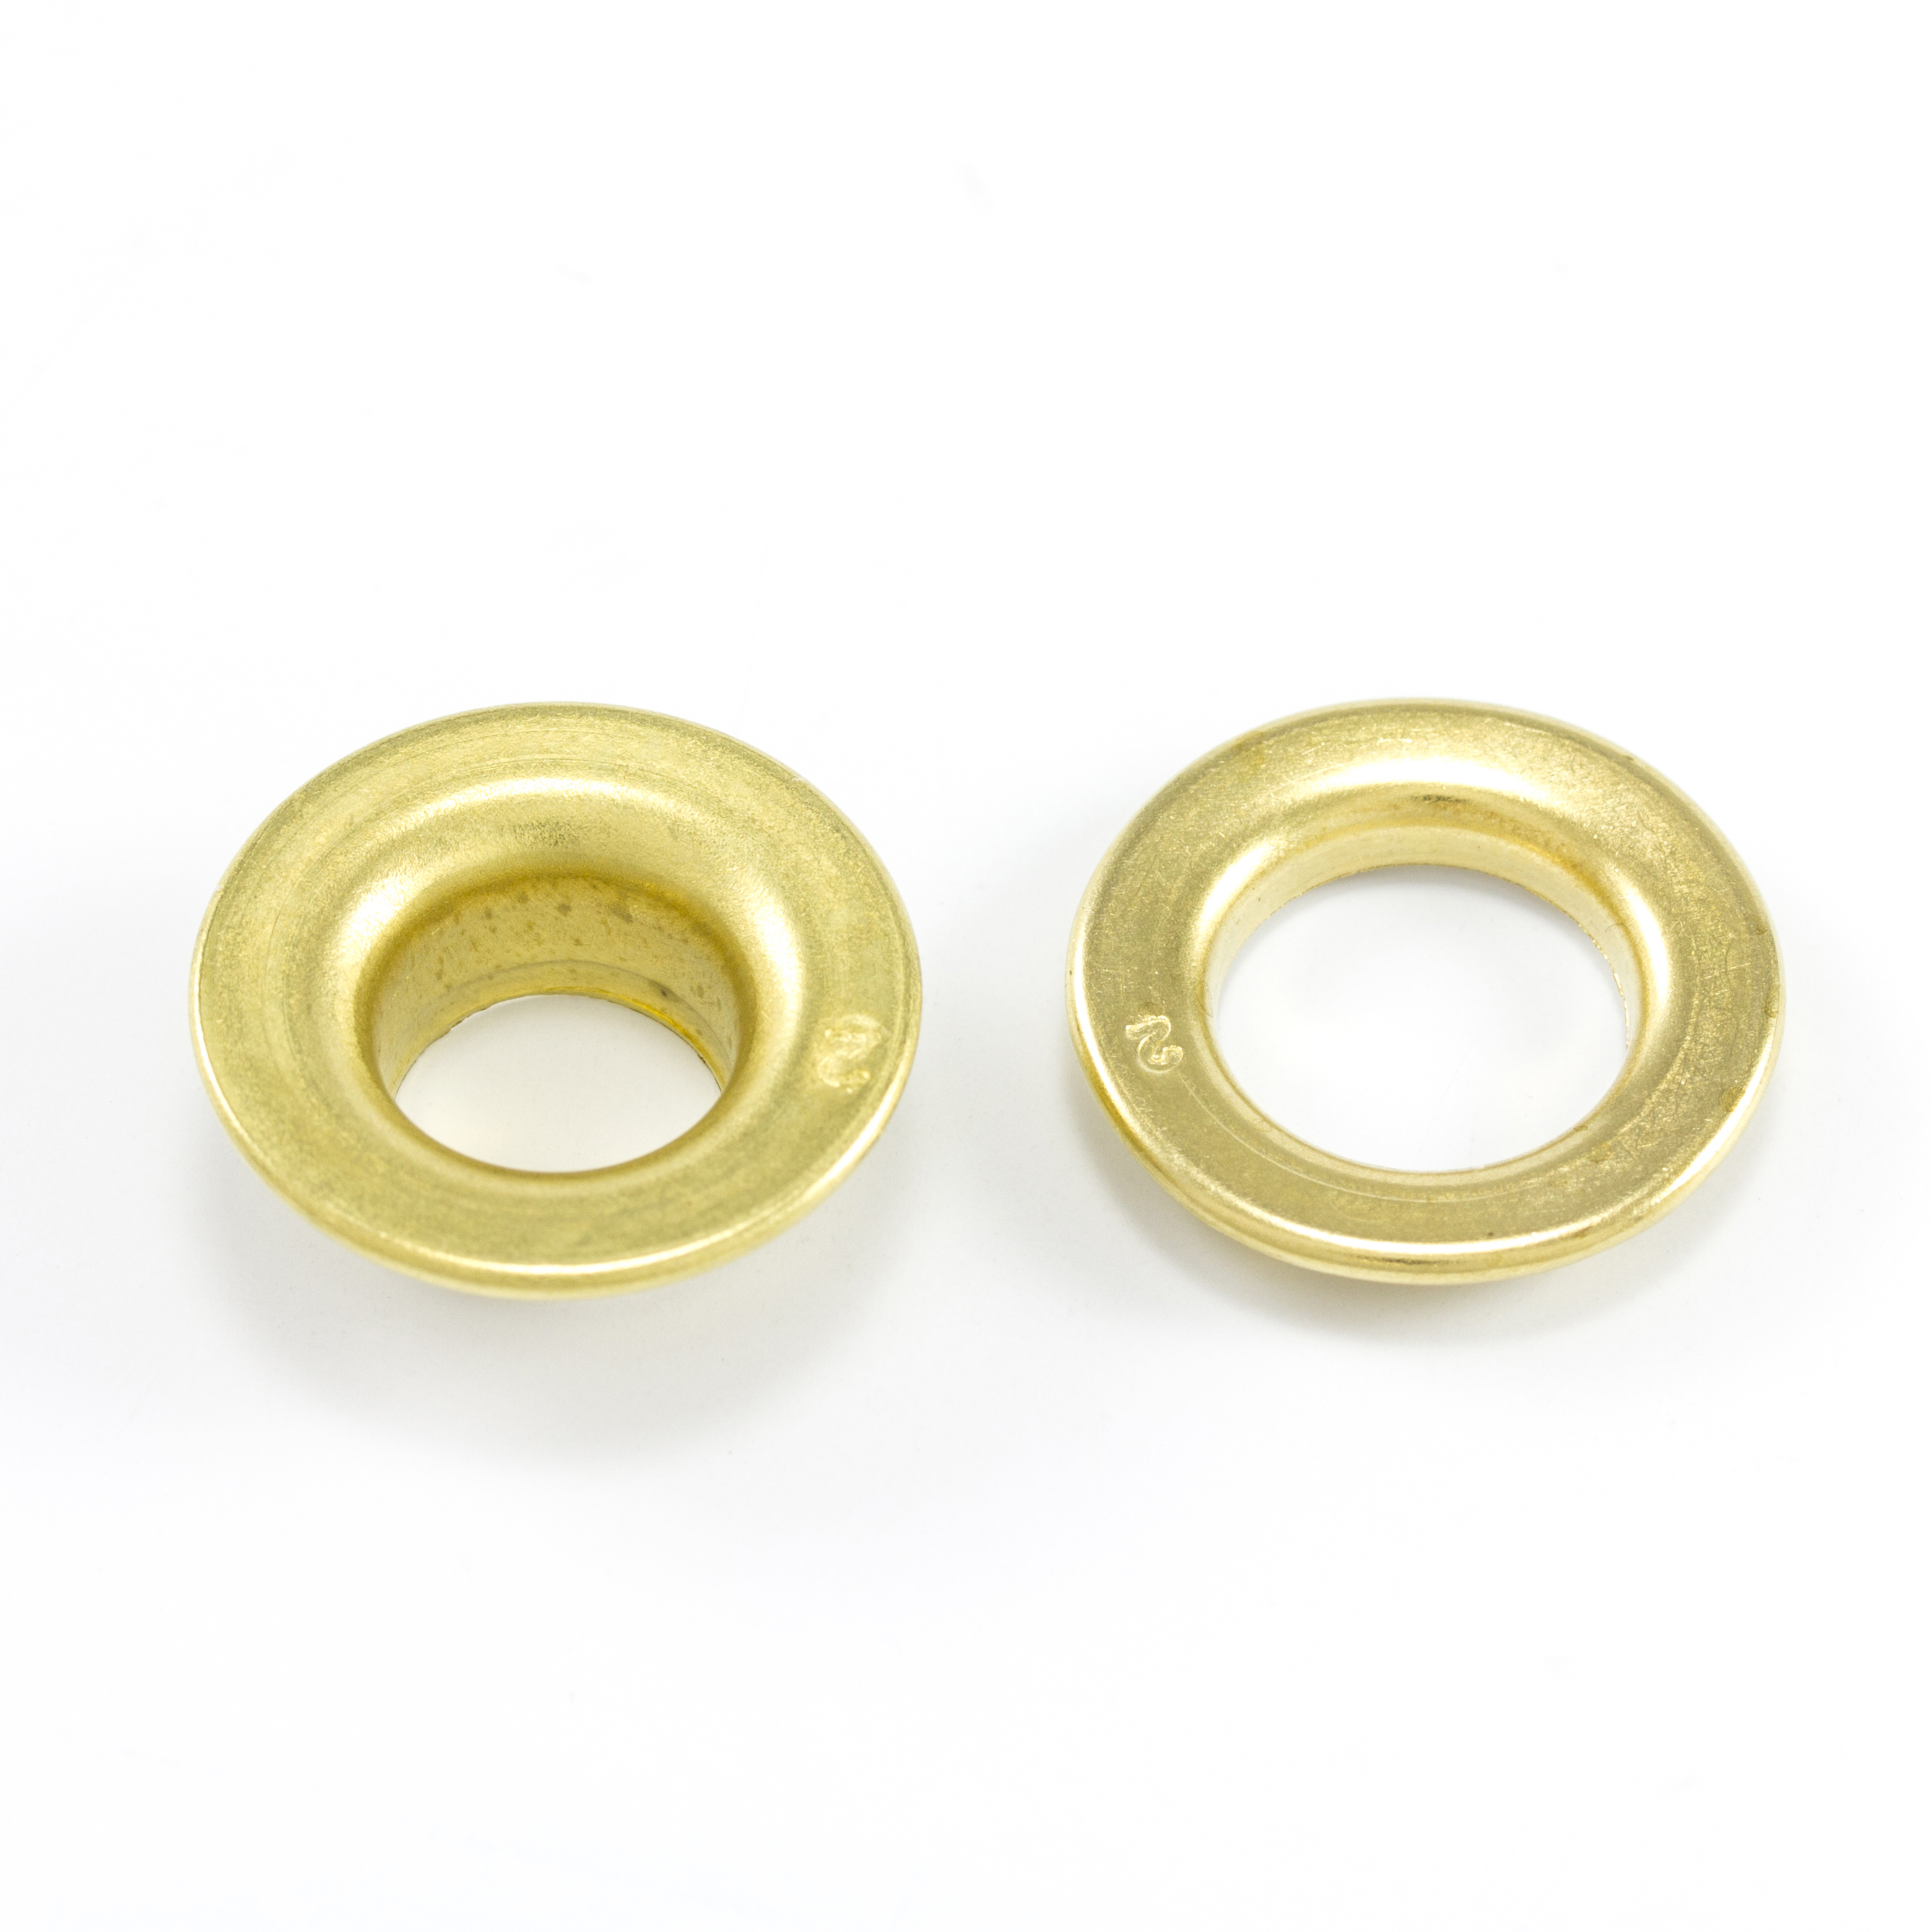 Thumbnail DOT Rolled Rim Grommet with Spur Washer #2 Brass 7/16 1